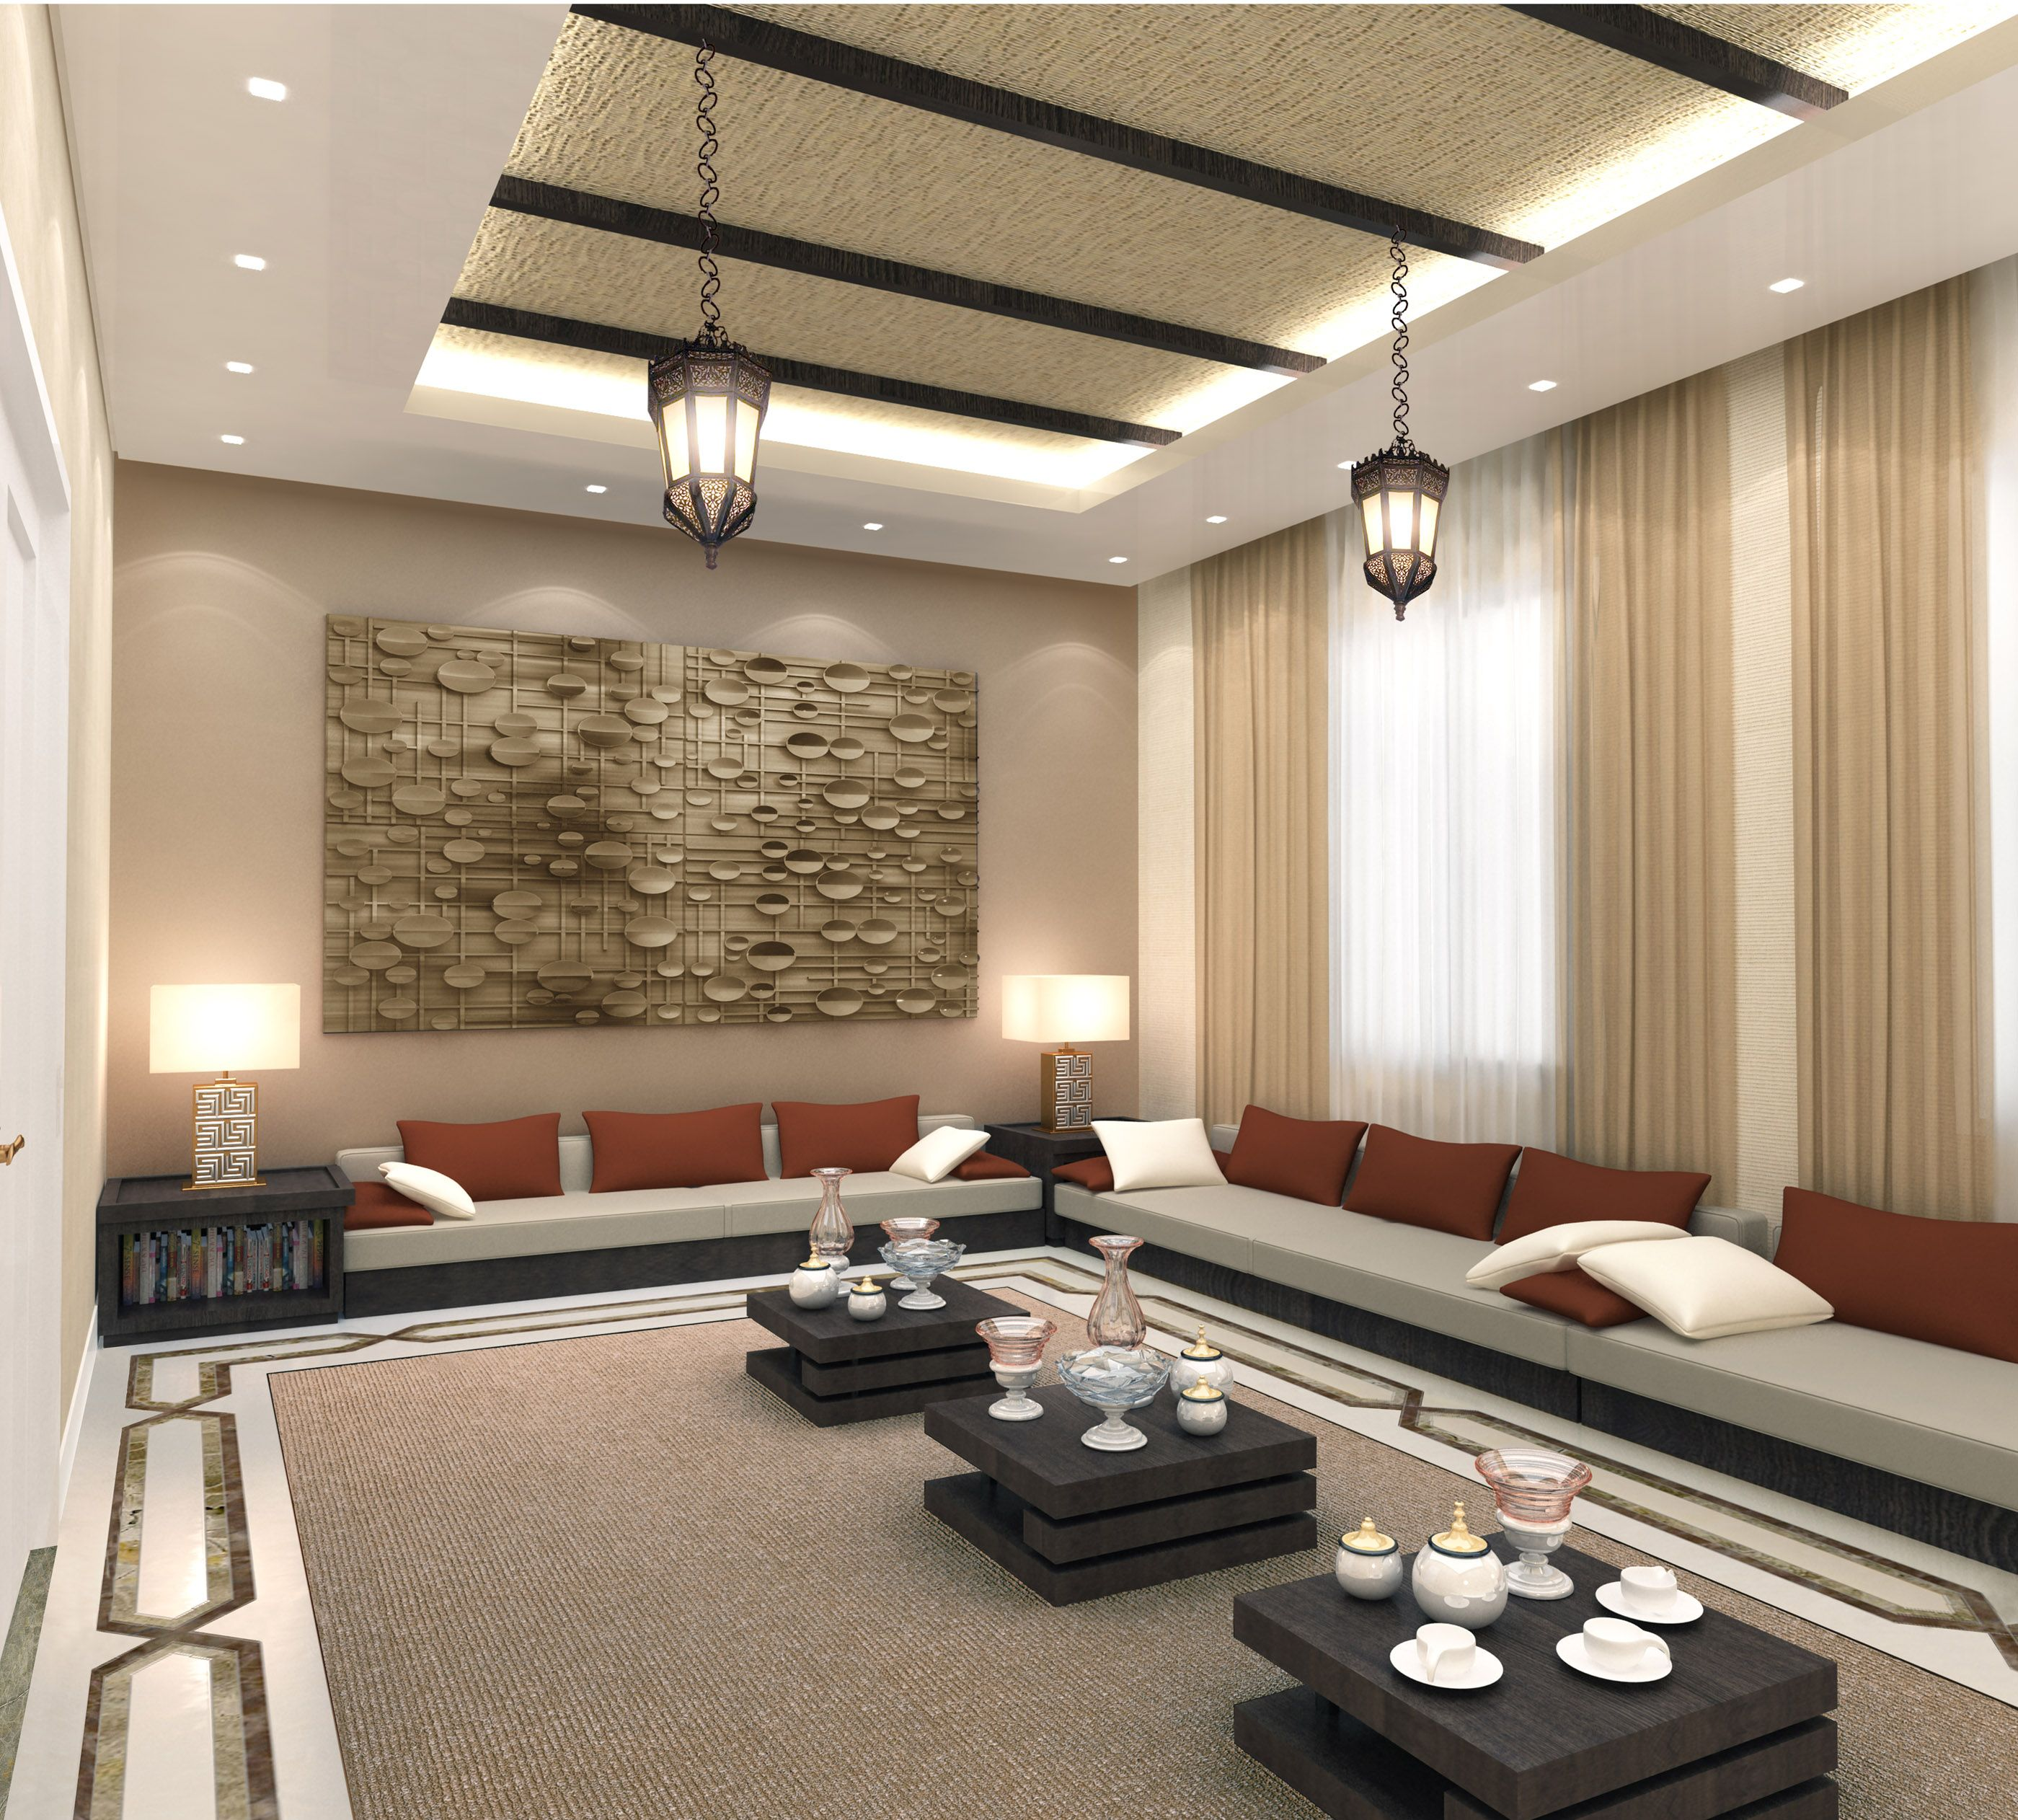 Arabian style majlis boudoir interiors majlis designs for Sitting room interior design pictures